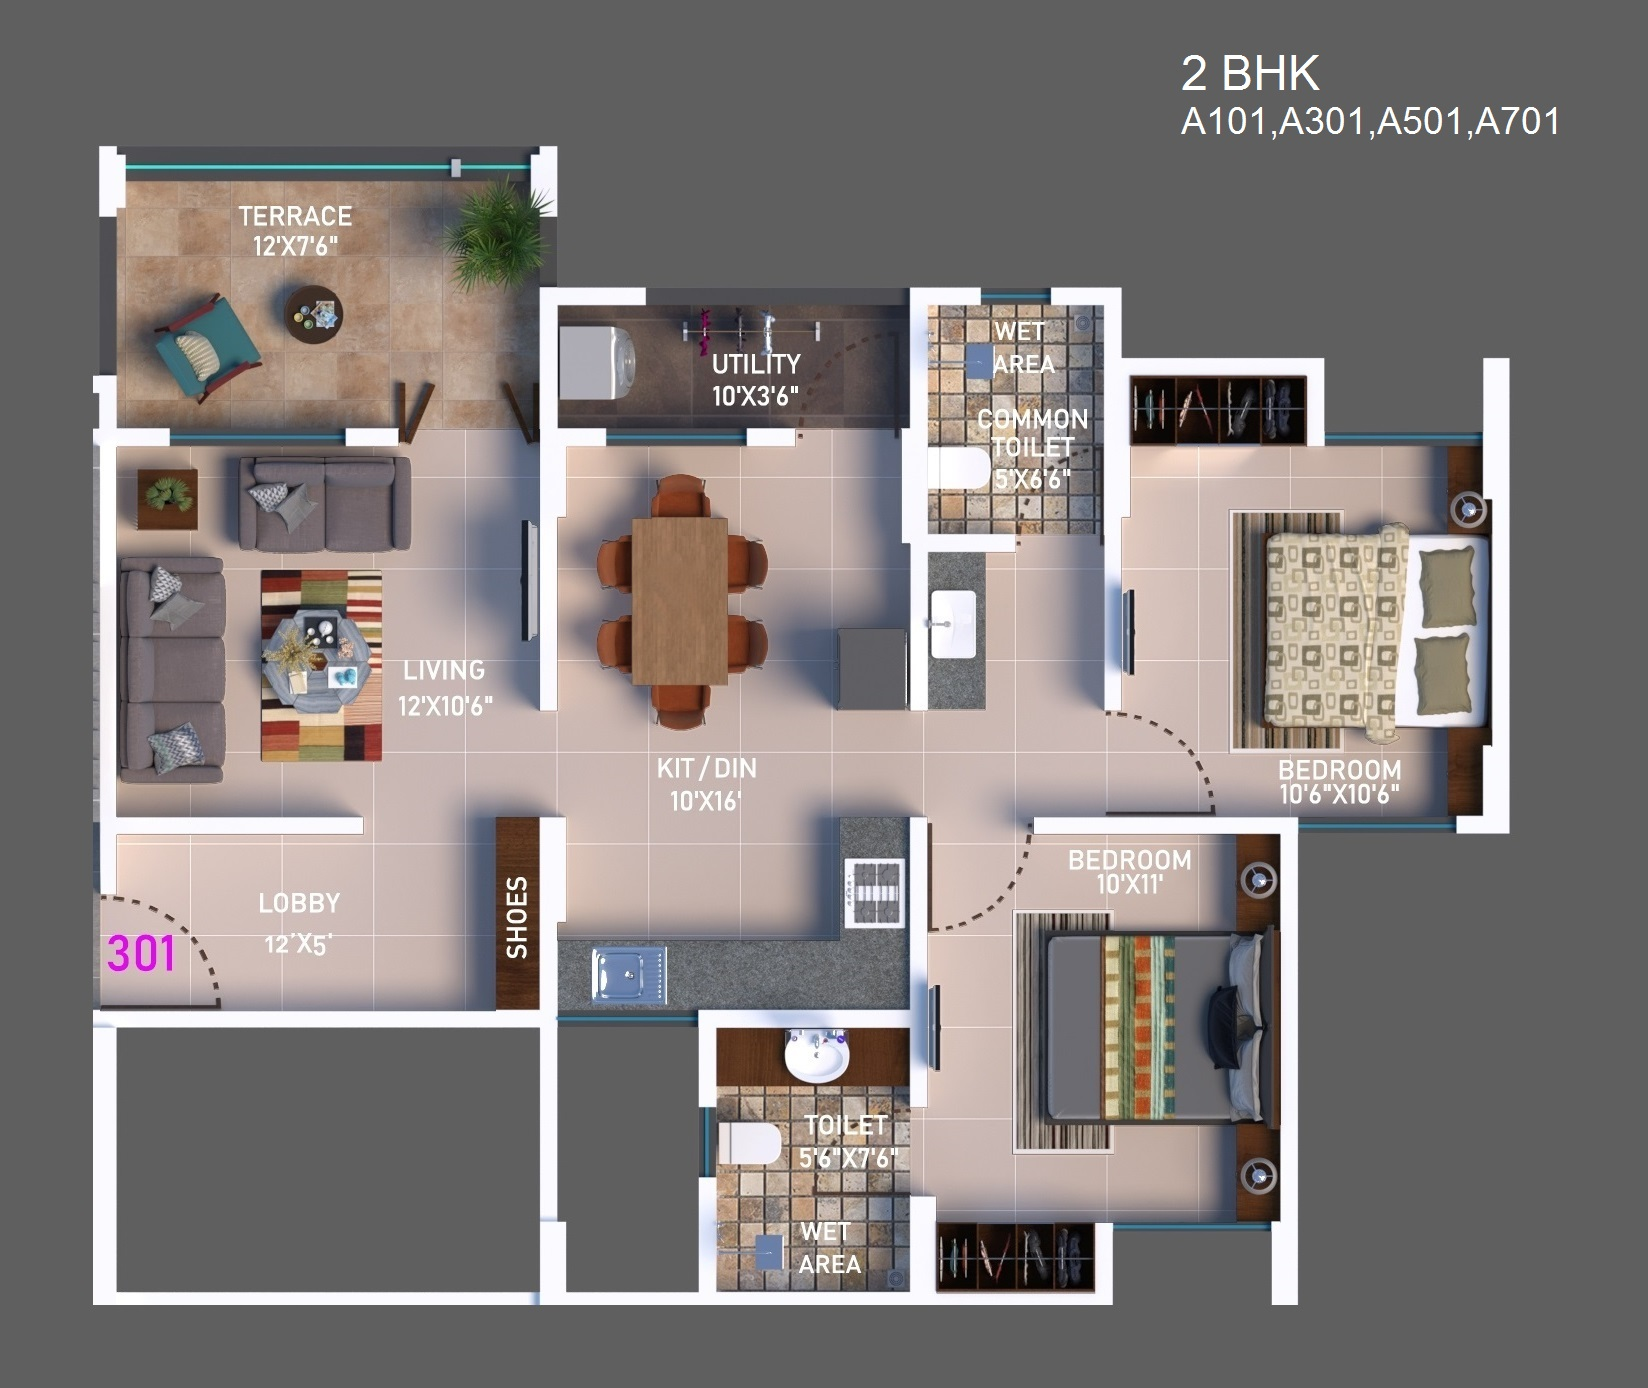 2 BHK Option 1